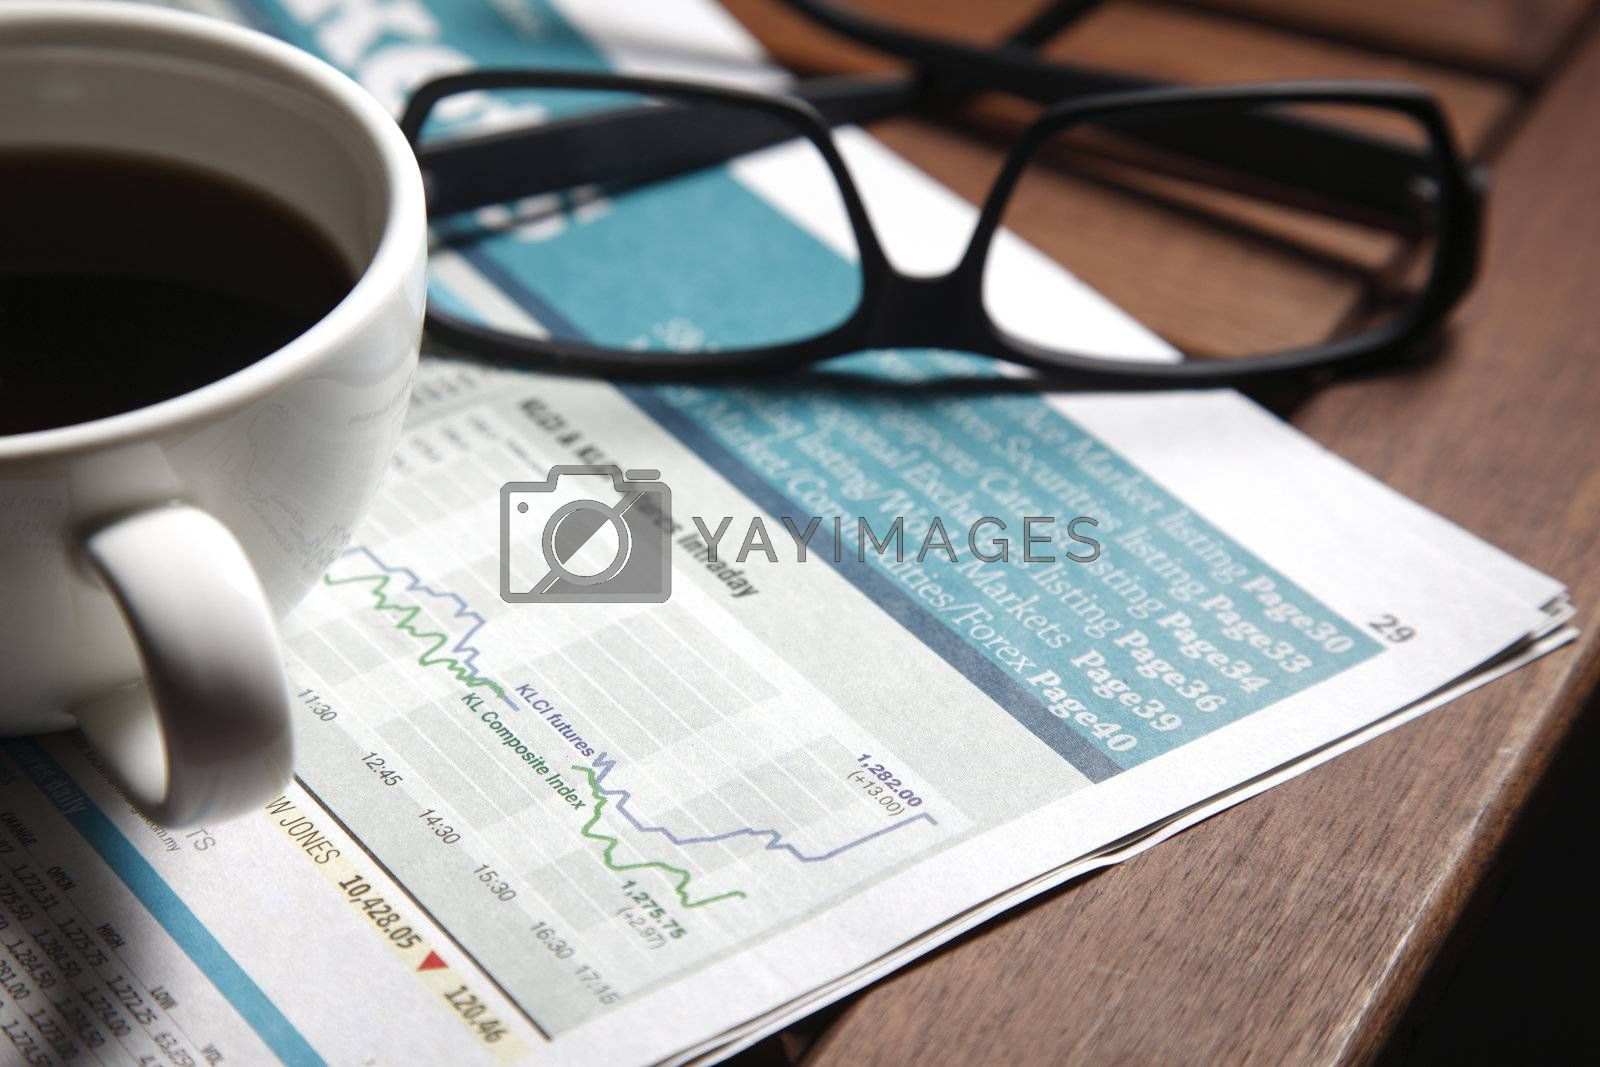 Coffee with newspapers and glasses on a table.